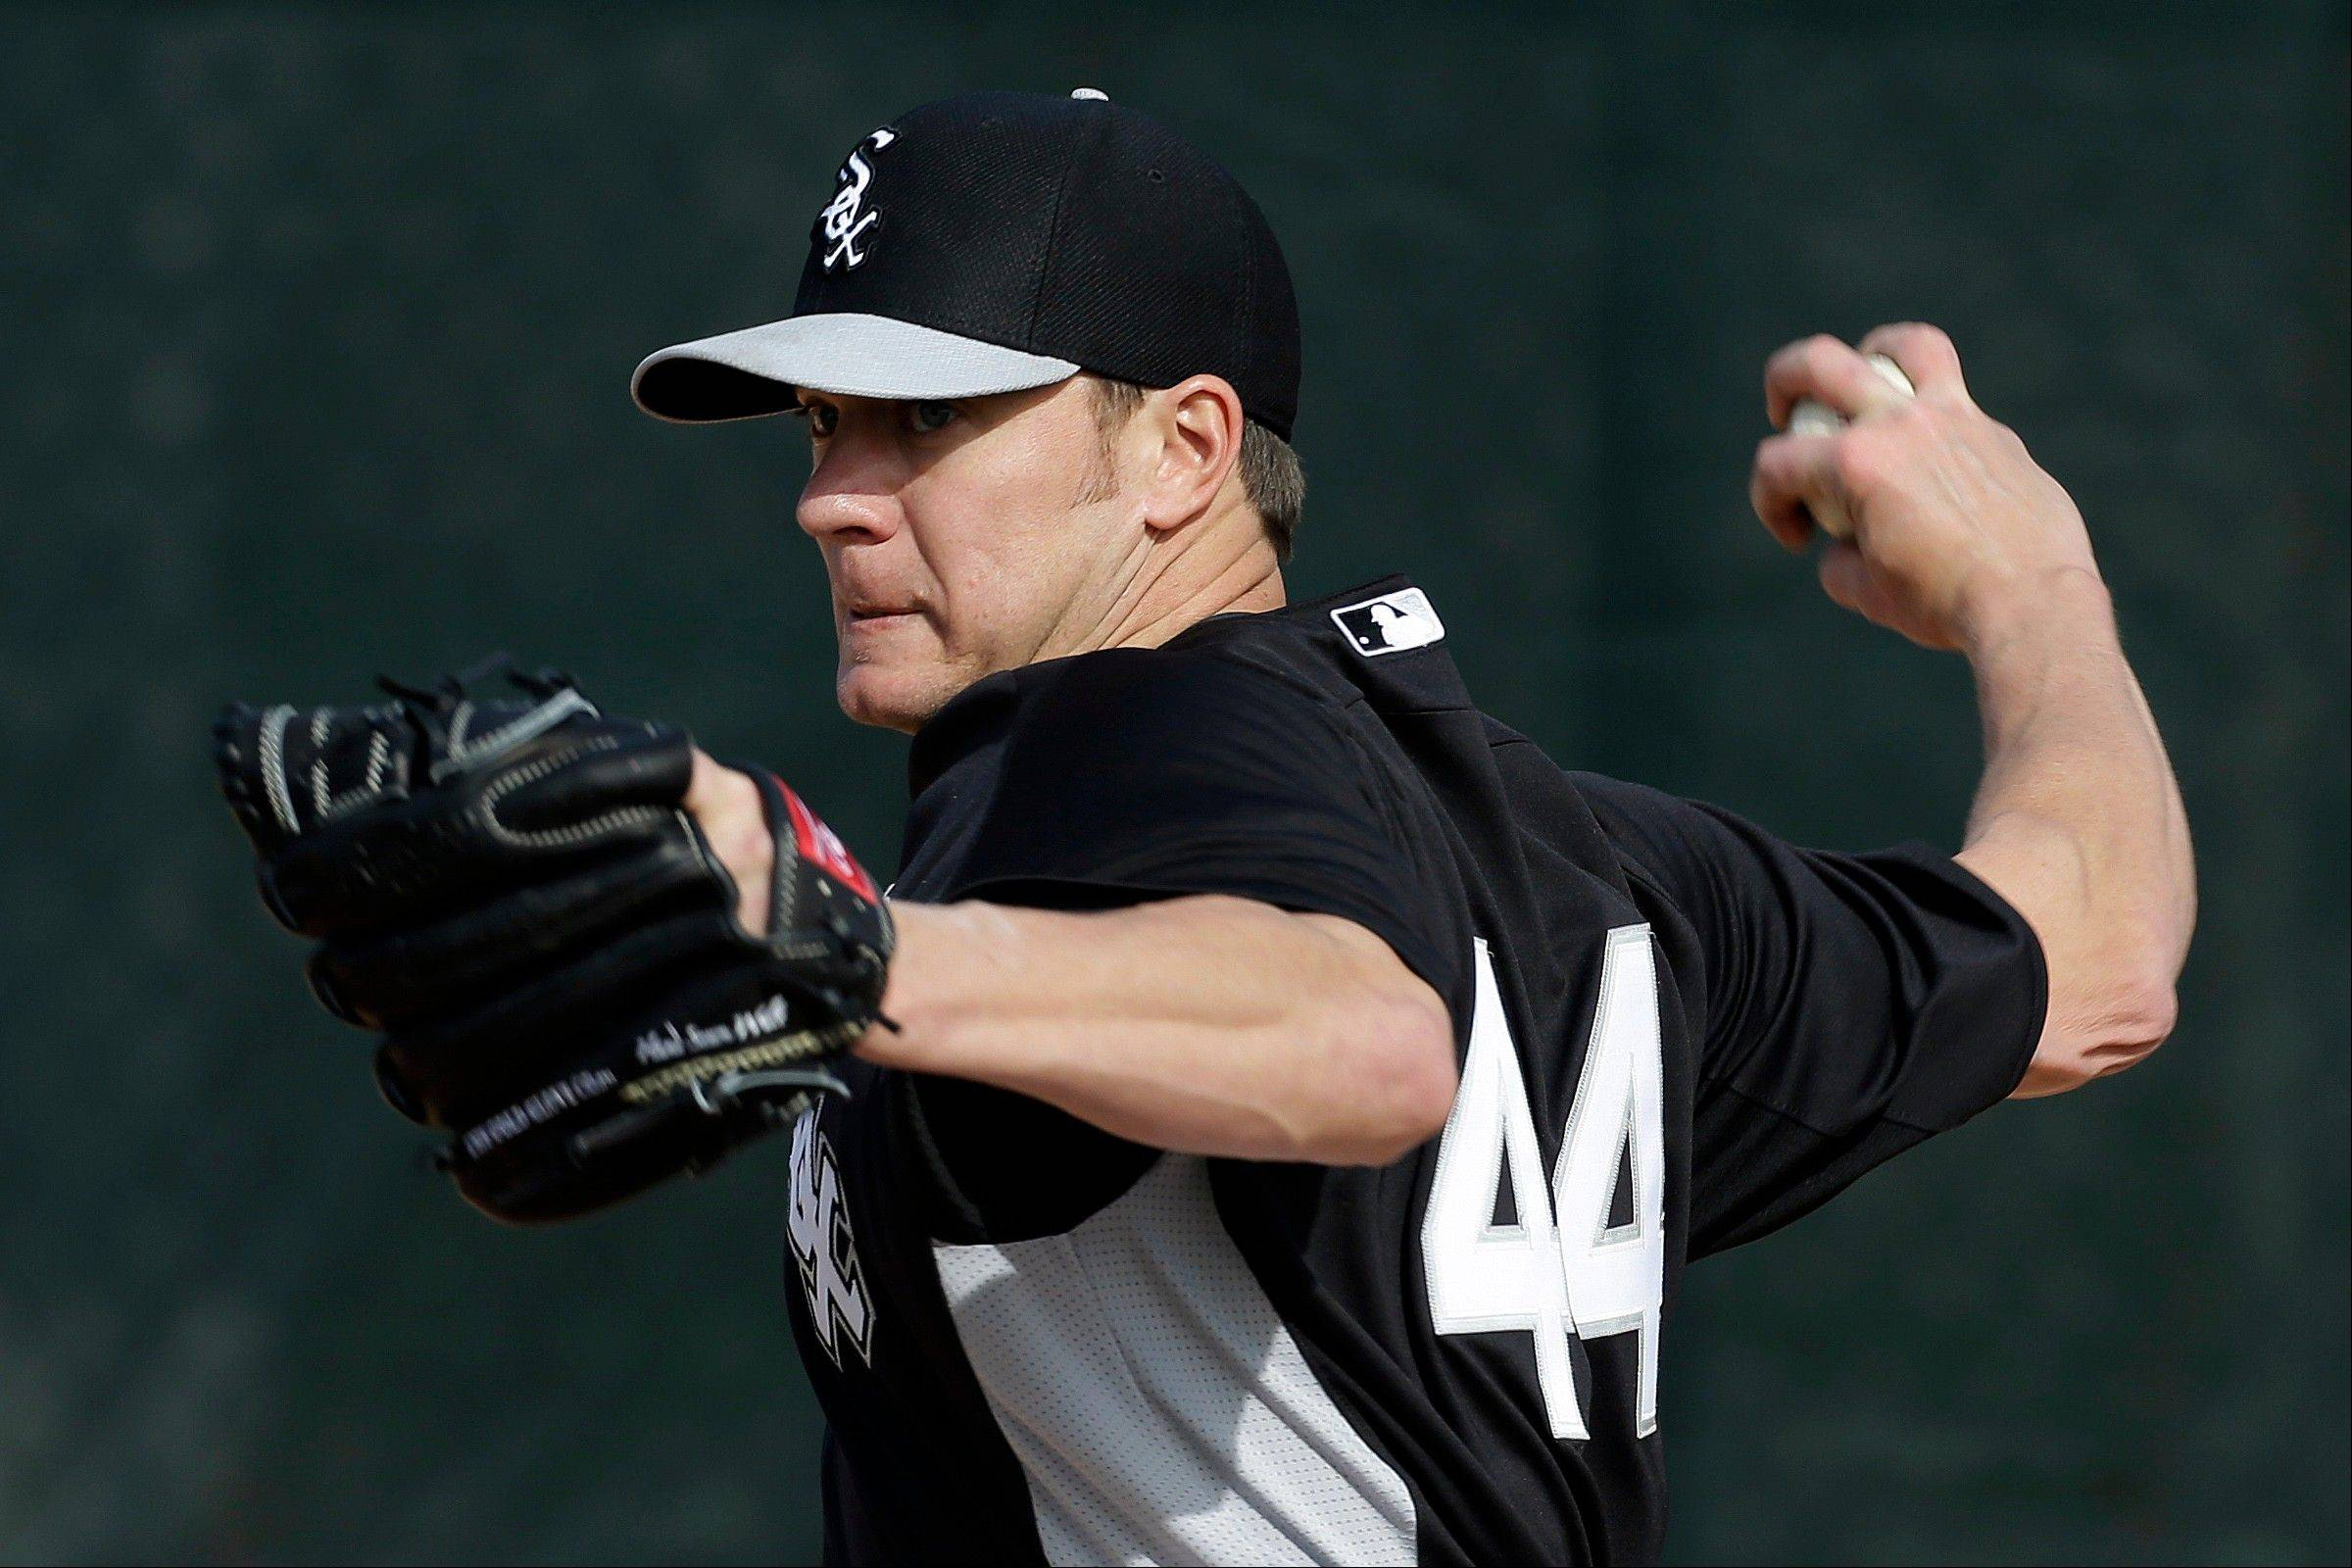 Jake Peavy takes the mound Wednesday as the White Sox host the Kansas City Royals.